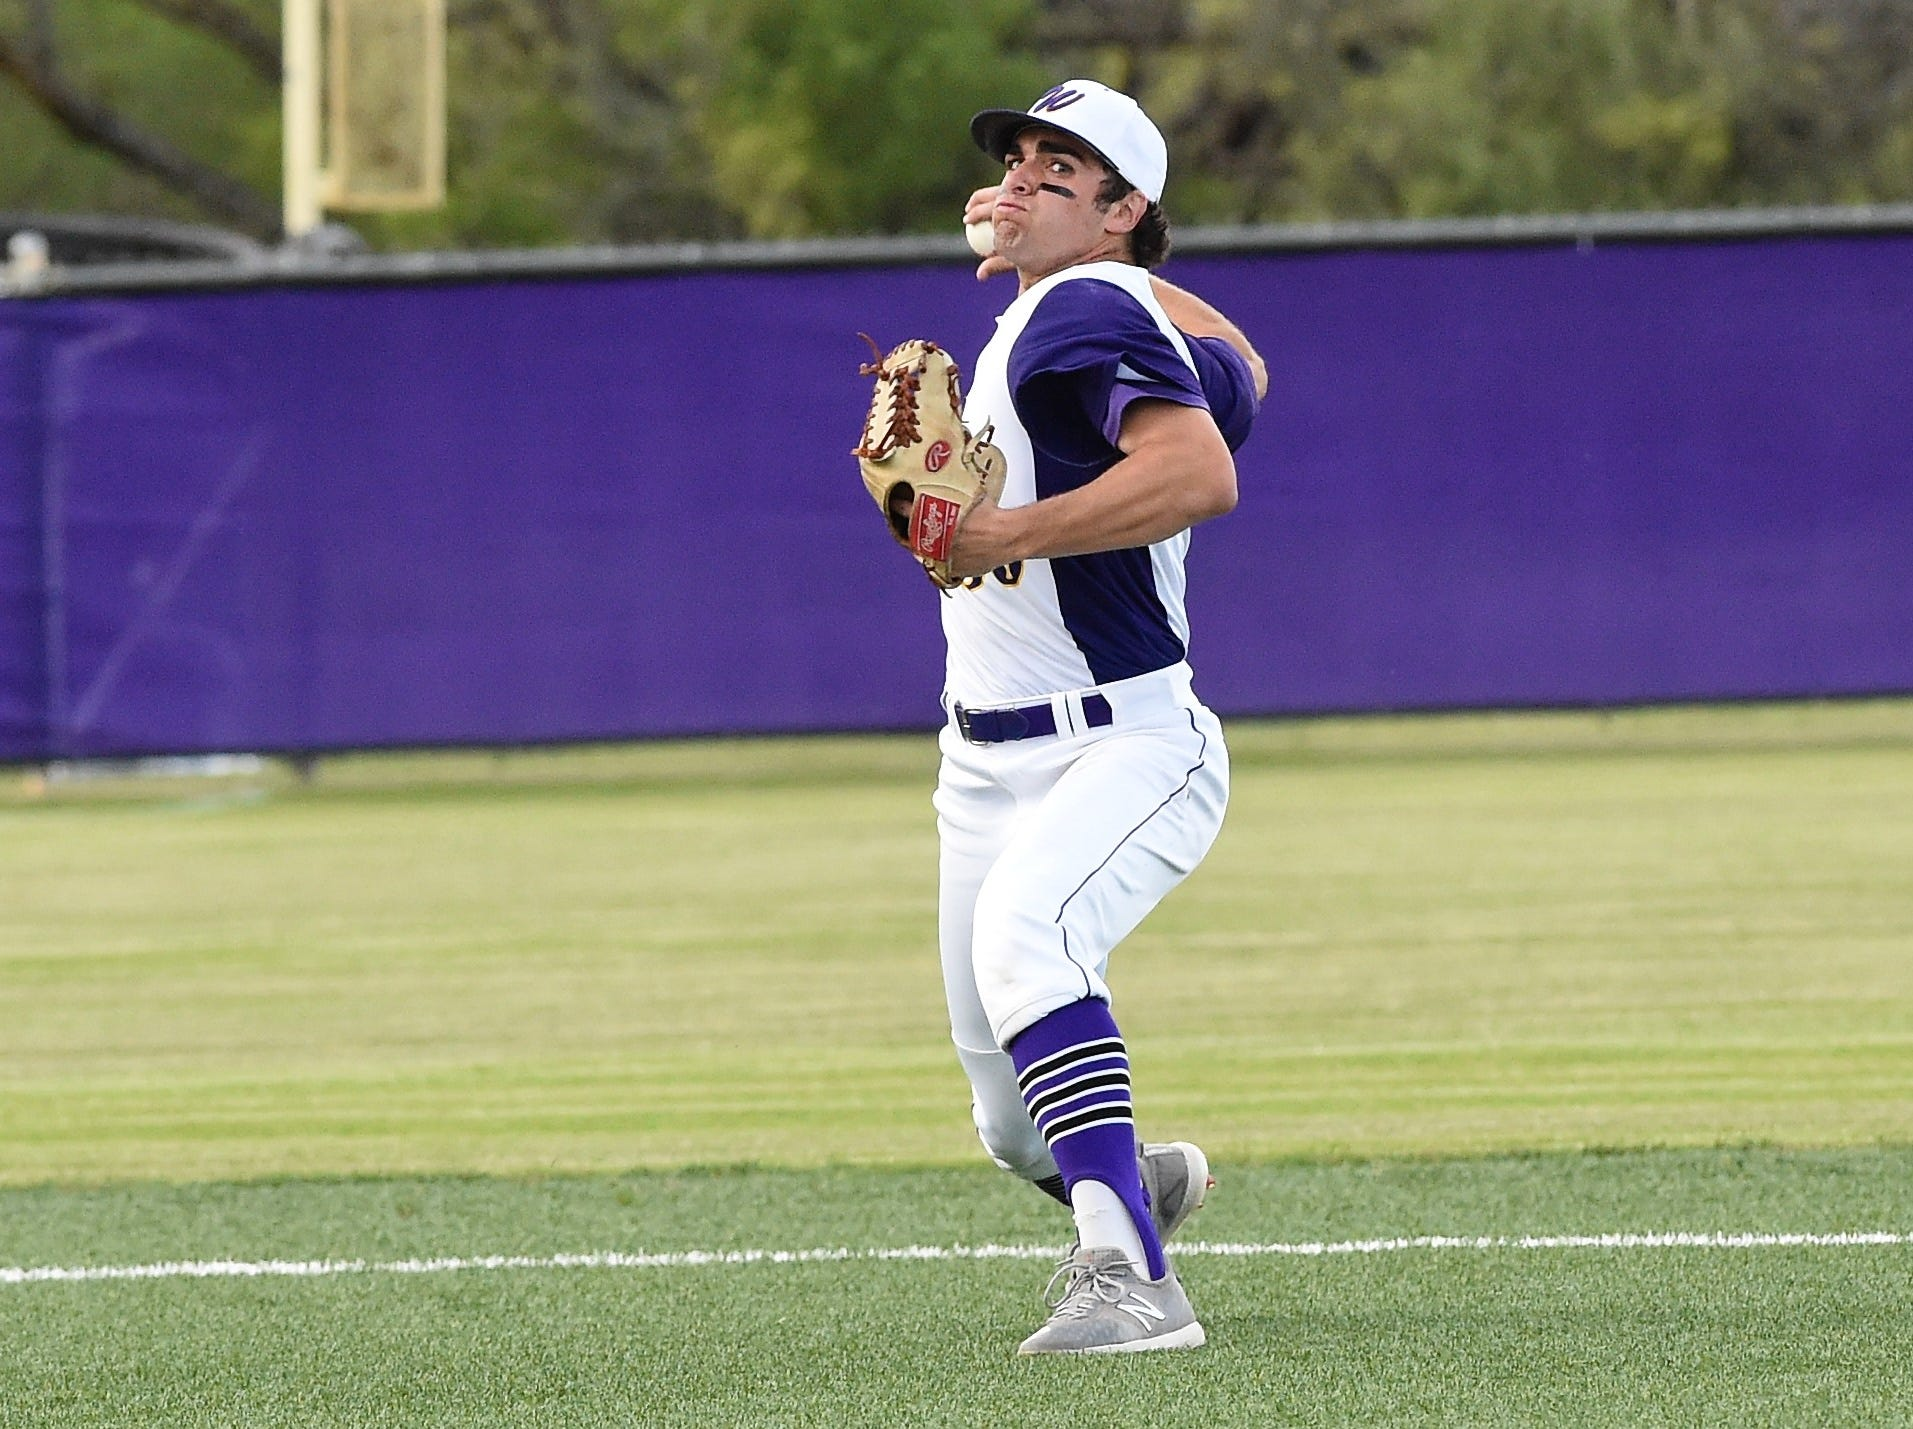 Wylie shortstop Jaxon Hansen (39) sets to throw to first for an out against Cooper at Bulldog Field on Friday, April 12, 2019. Hansen had six assists in the 4-3 win.